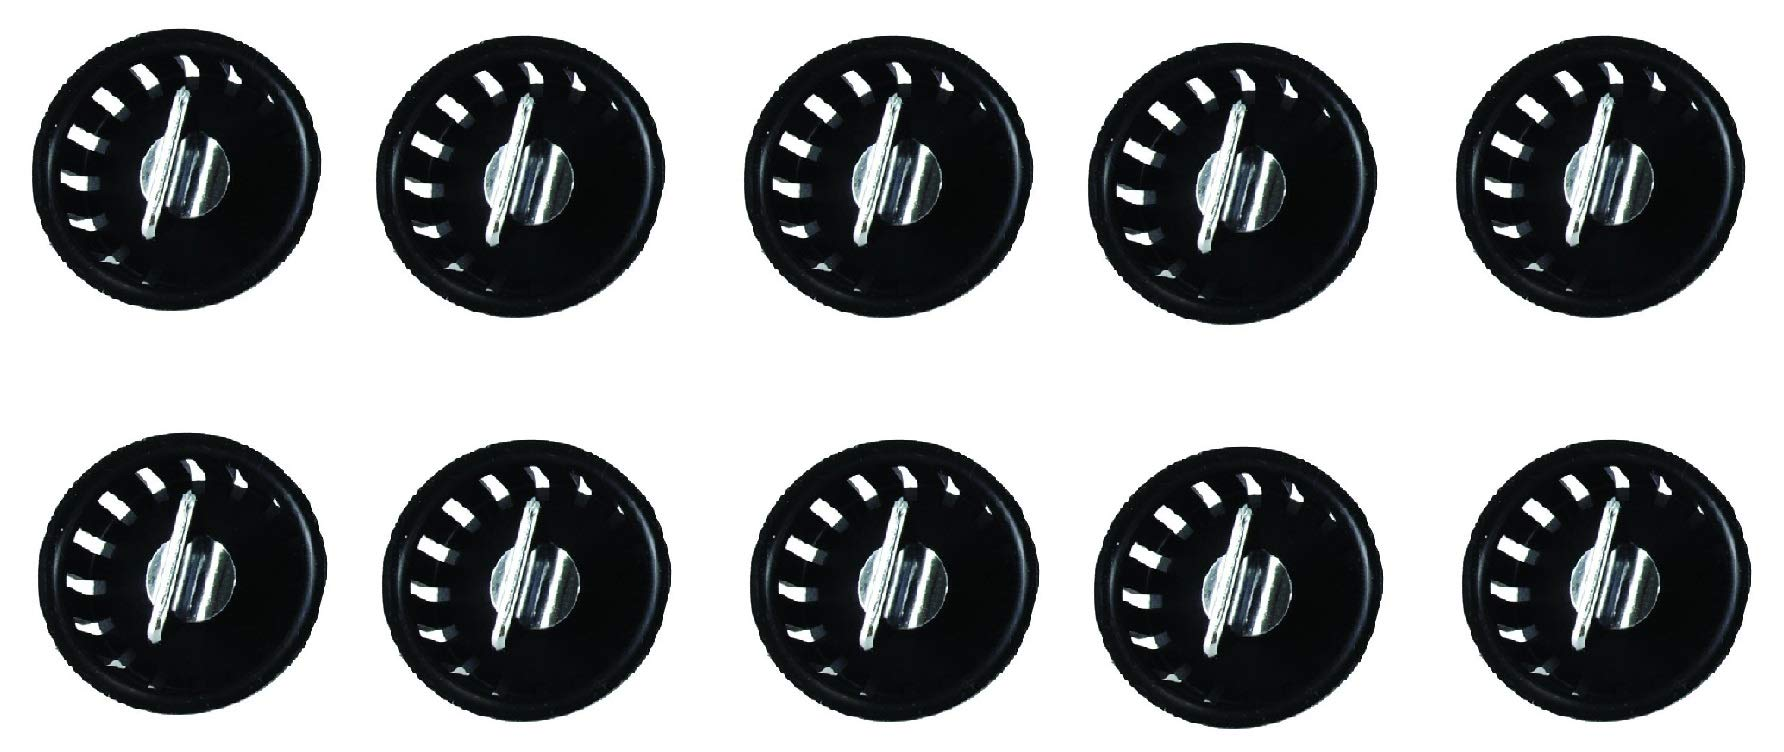 JR Products 9491-300-062 Threaded Strainer Basket (10) by JR Products